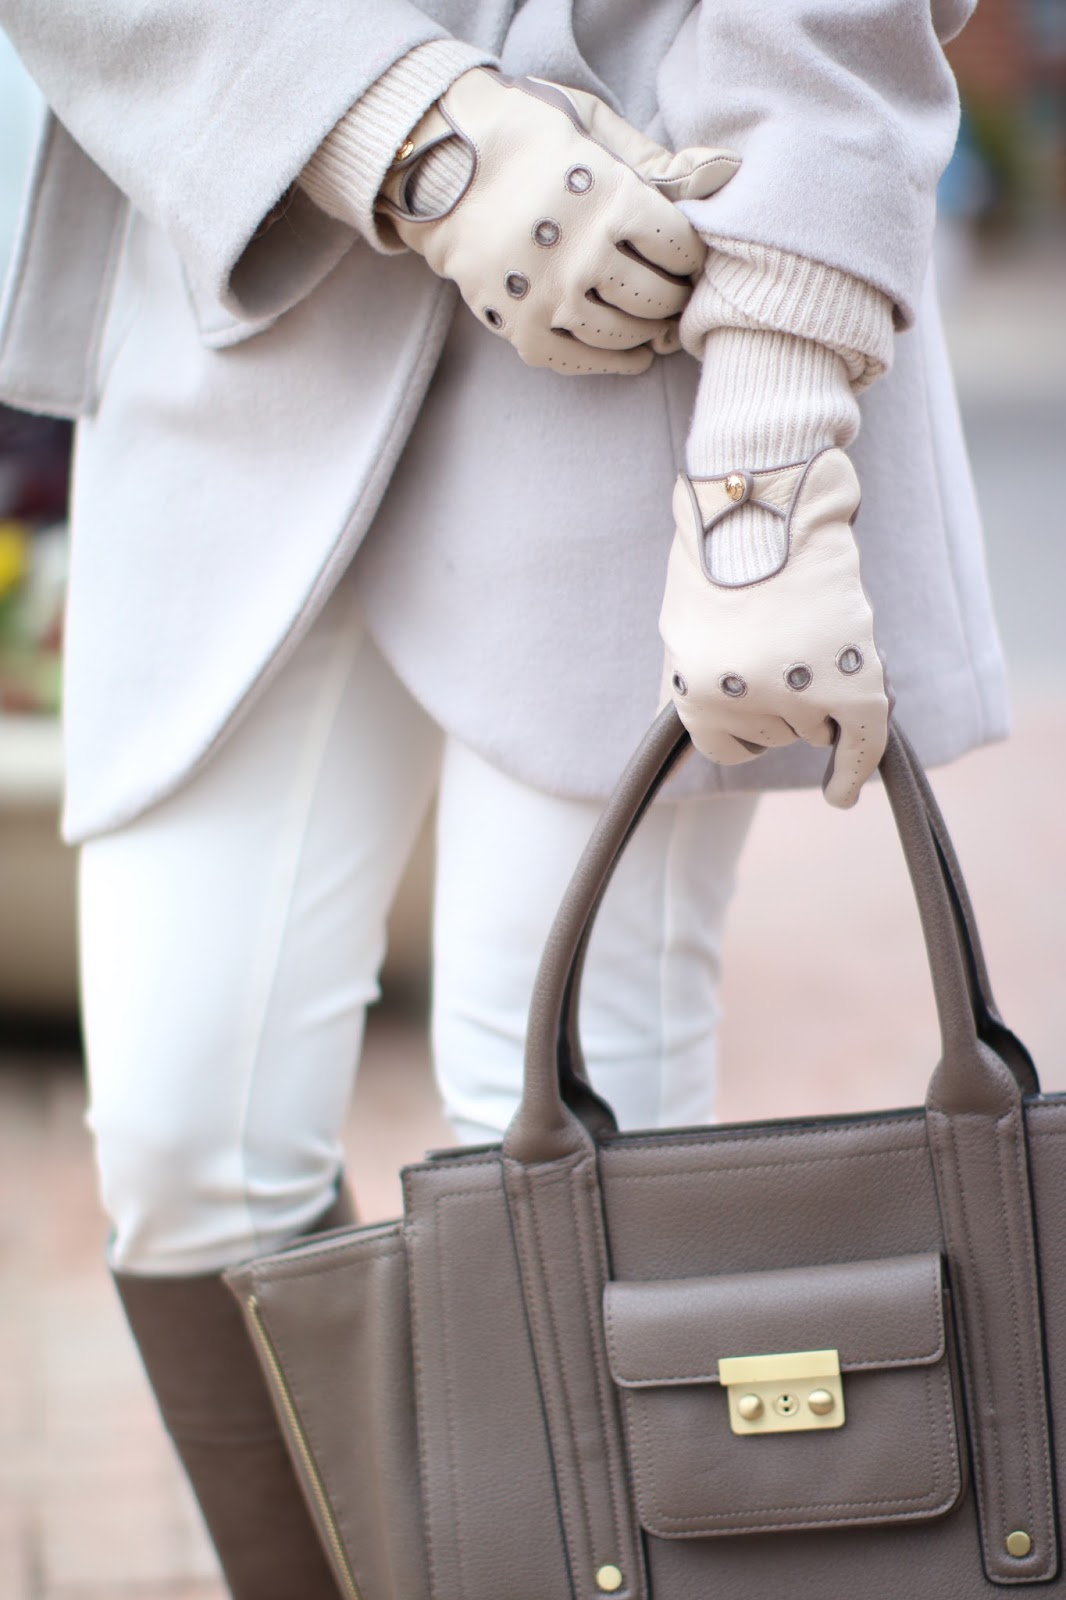 tahari shawl collar coat, shawl collar coat, henri bendel moto gloves, philip lim for target handbag, tory burch boots, taupe boots, wear white in winter, winter fashion, fashion blogger, dallas blogger, black girl blogger, how to wear neutrals